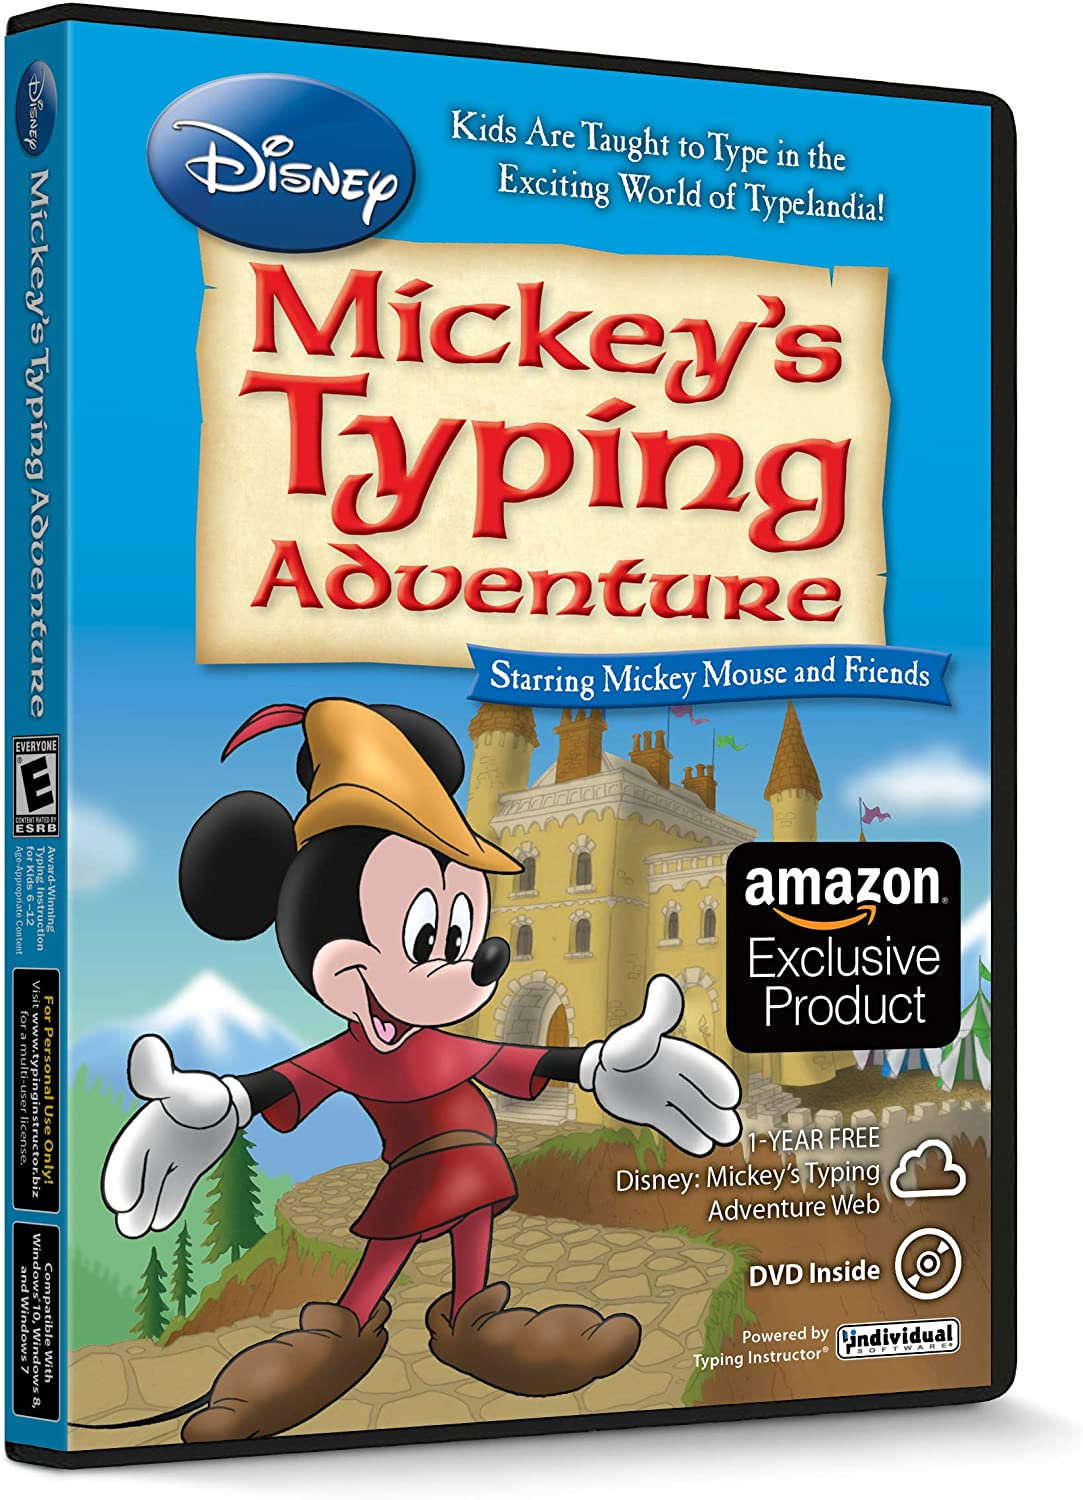 Disney: Mickey's Typing Adventure 81Nc0rRryeL